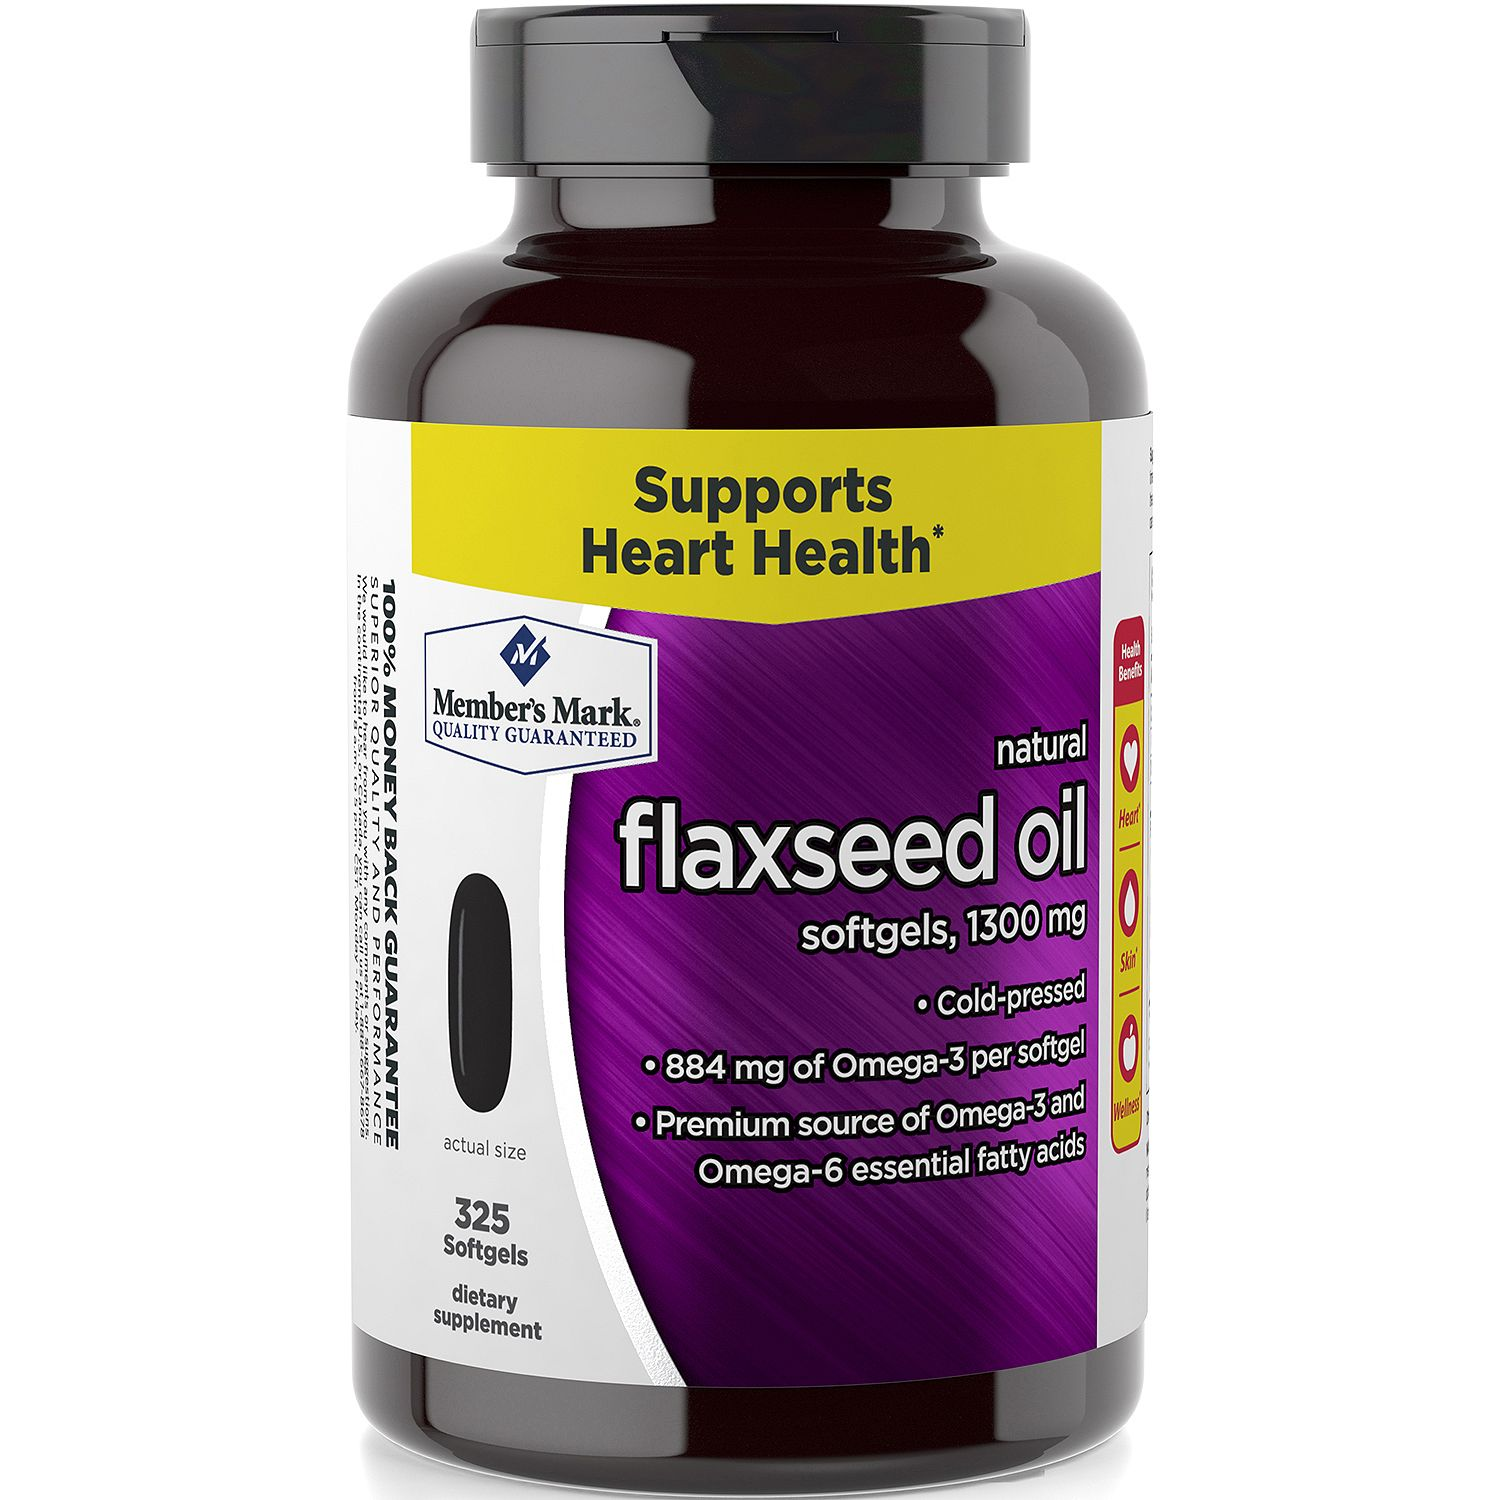 Member's Mark 1300 mg Flaxseed Oil Dietary Supplement (325 ct.)